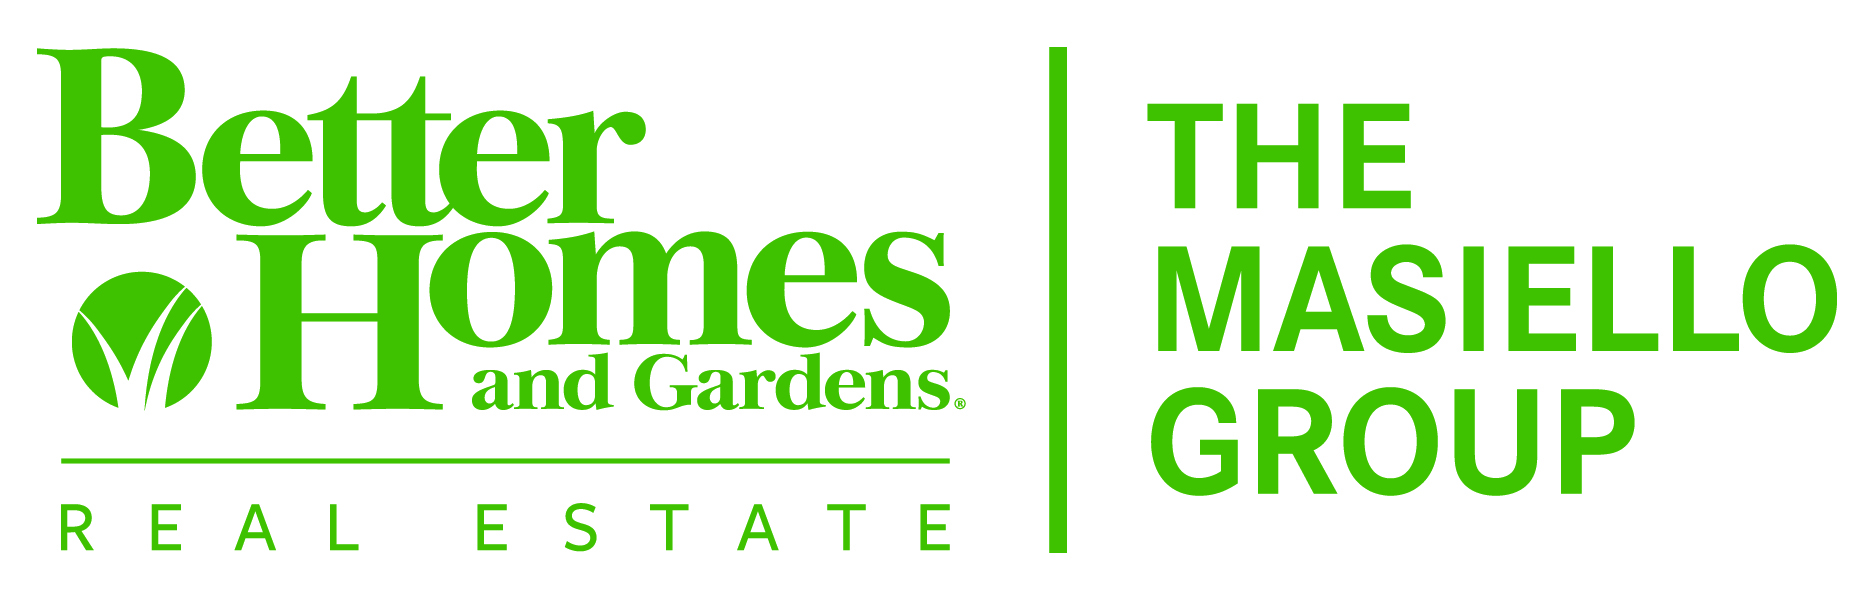 Better homes and gardens real estate the masiello group Homes and gardens logo